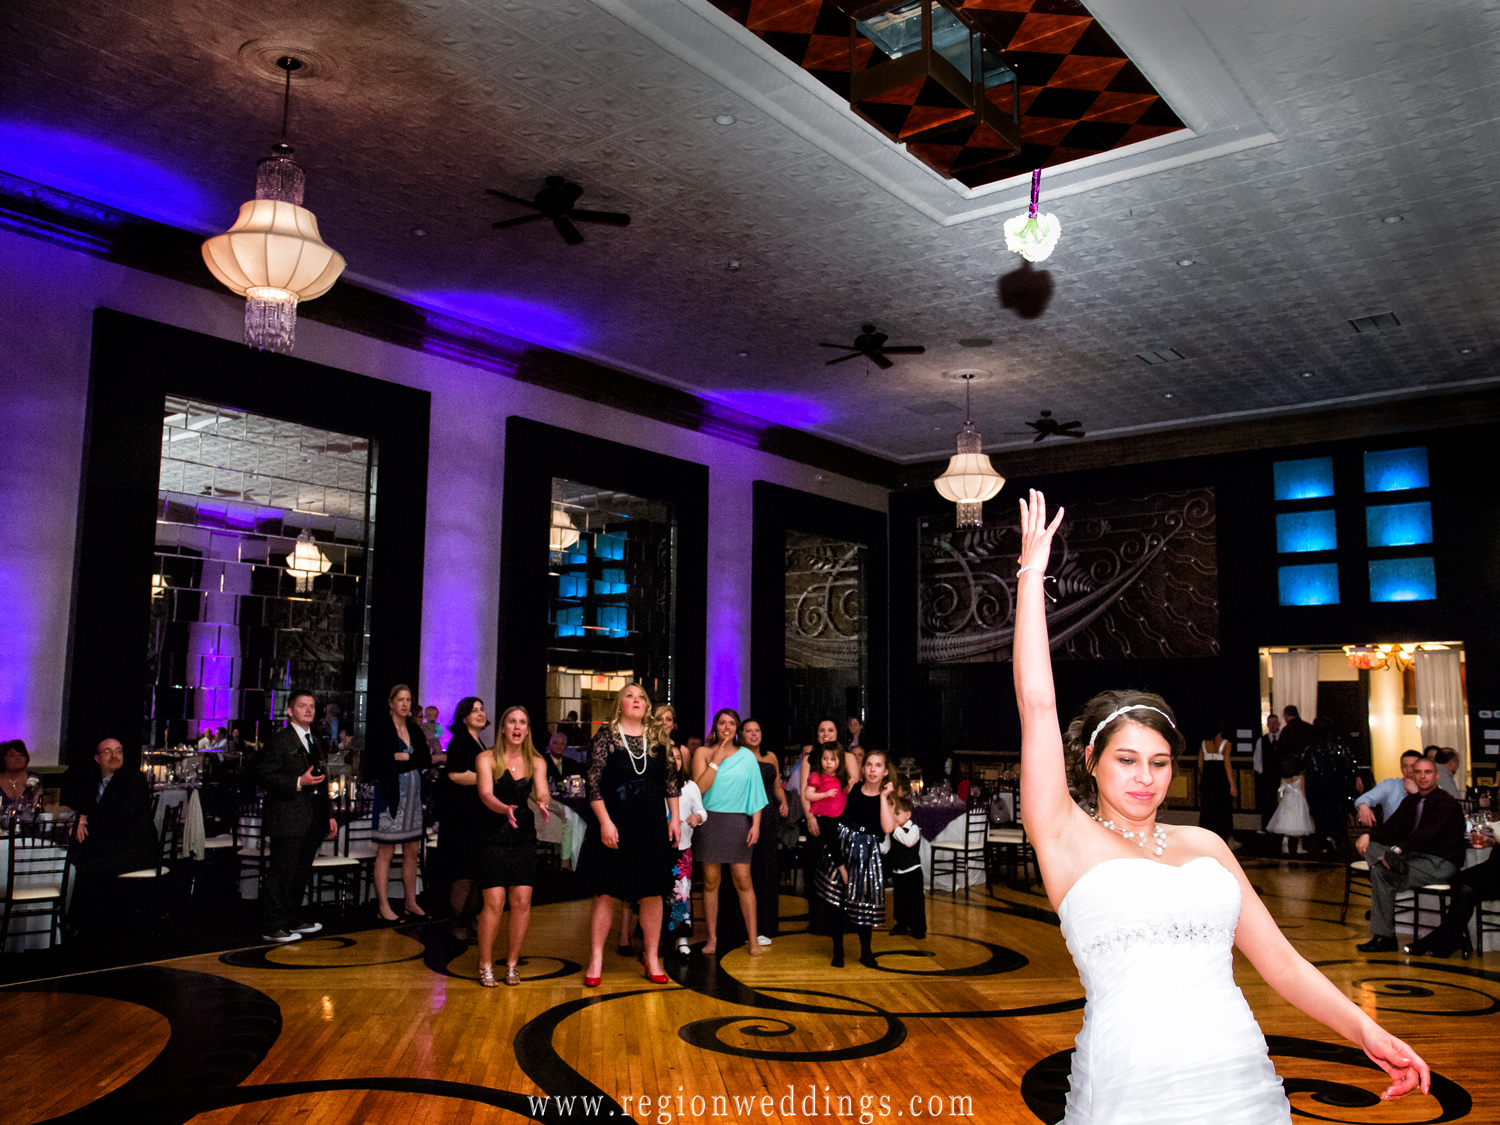 A bride tosses her bouquet at The Allure ballroom in Laporte, Indiana as beautiful purple uplighting fills the room.